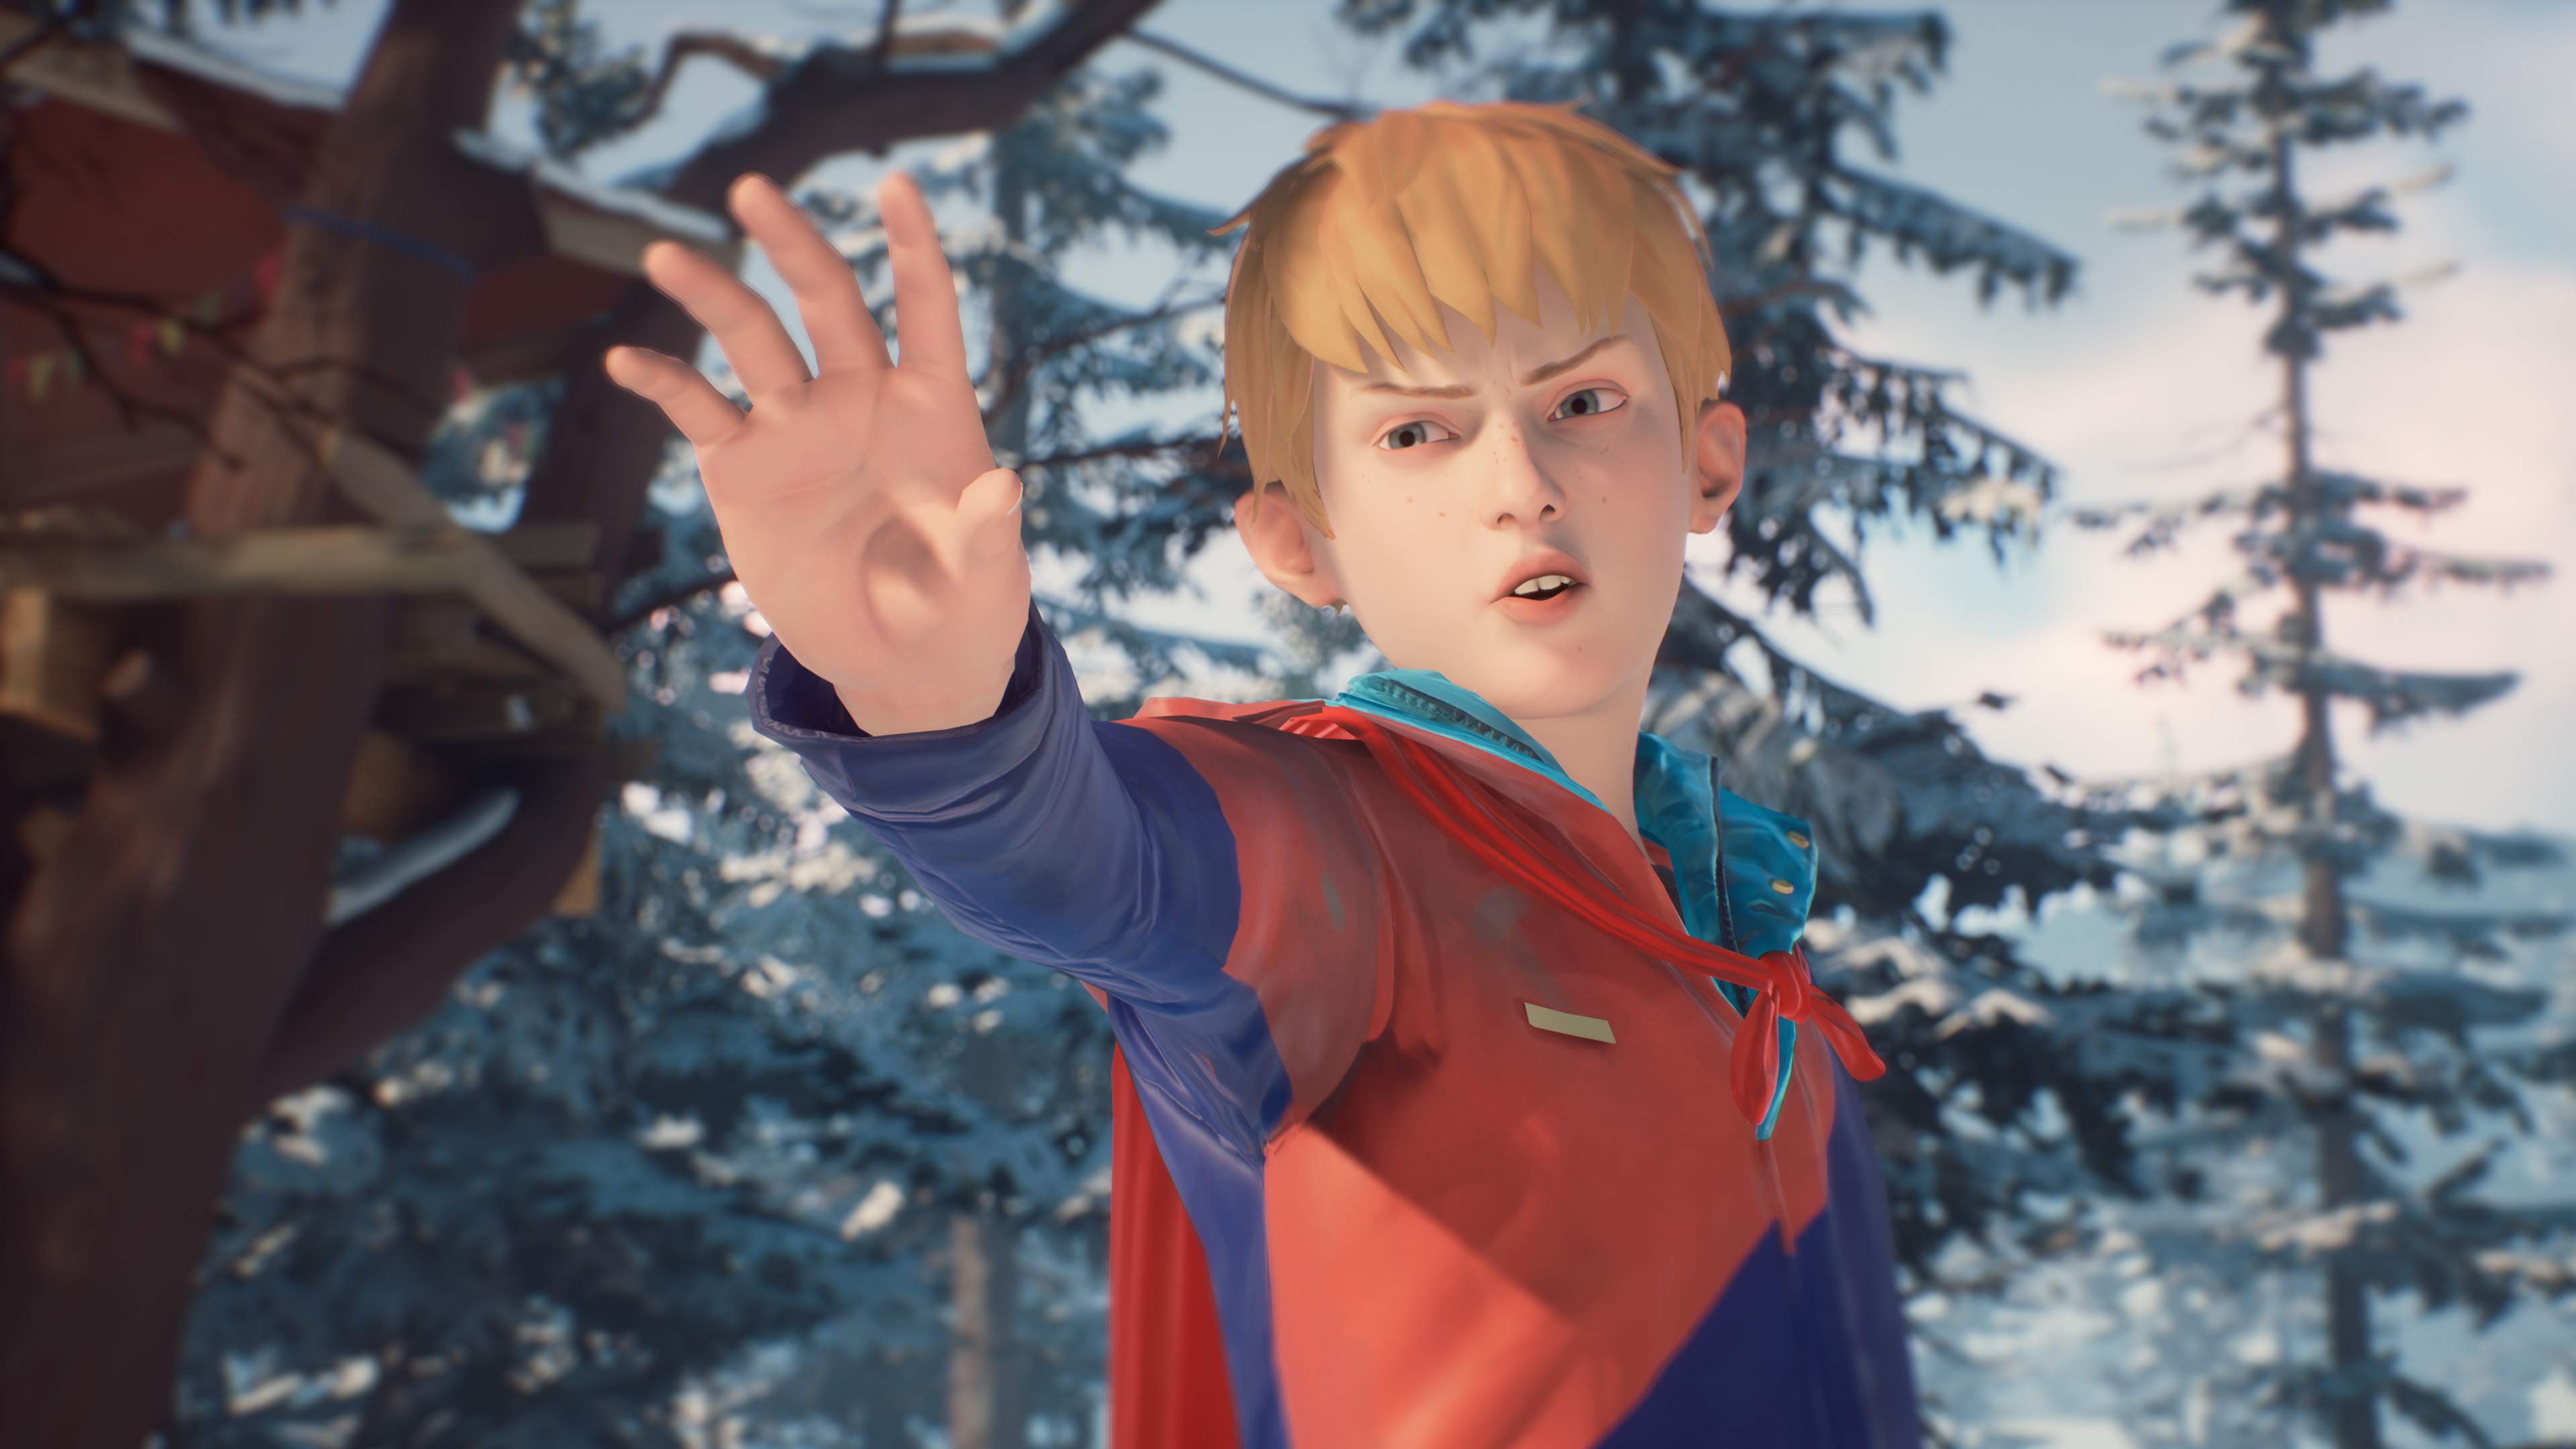 Chris, reaches out his hand in a power pose. He wears a red superhero cape. A snowcapped treehouse is visible behind him.